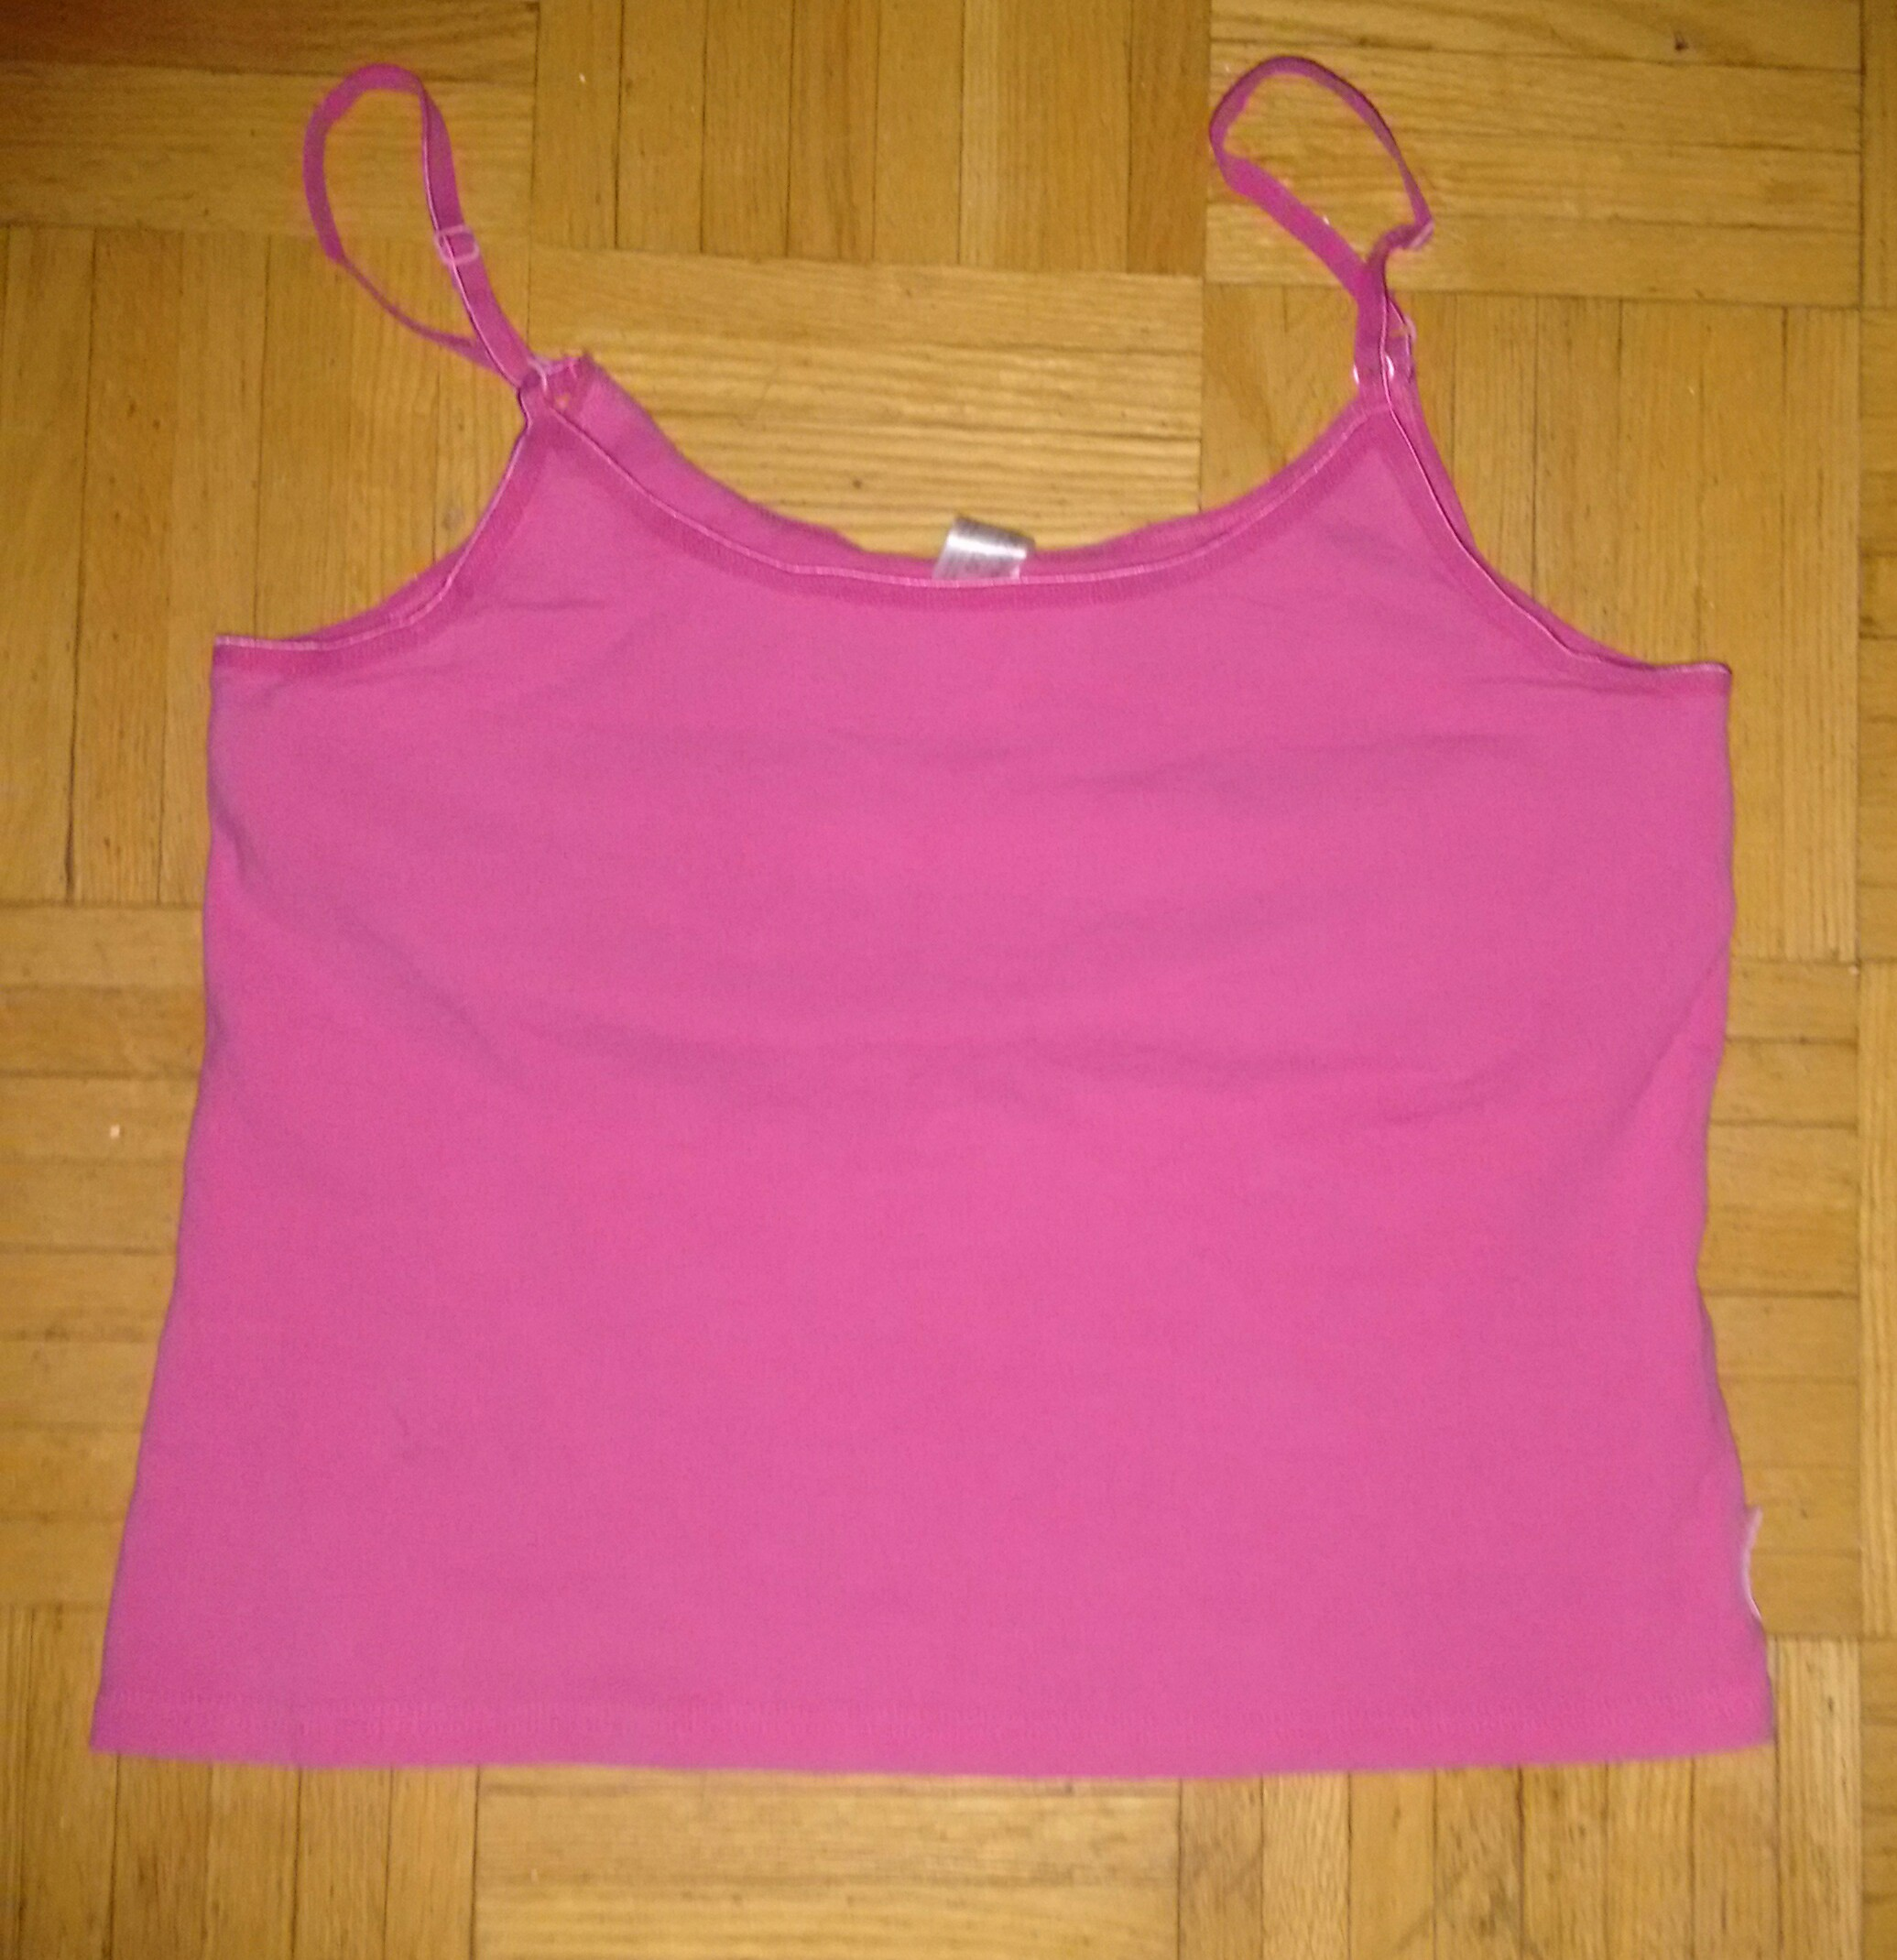 Hot pink top large